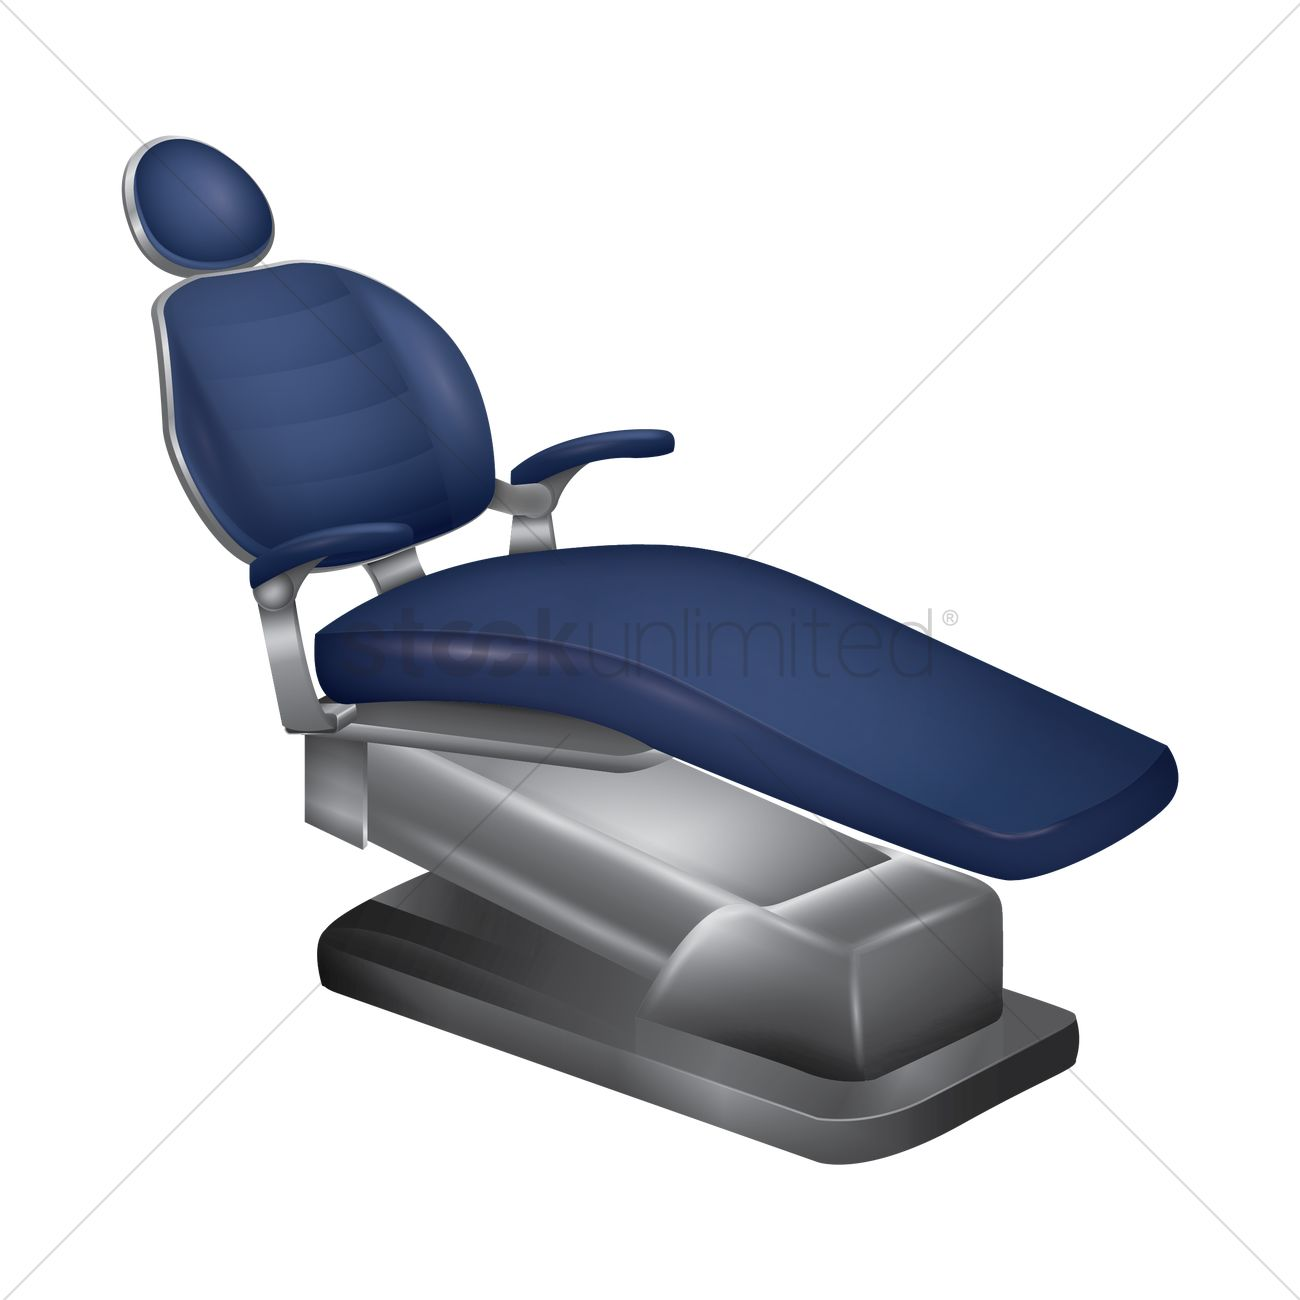 Dental Chairs Dental Chair Vector Image 1694842 Stockunlimited